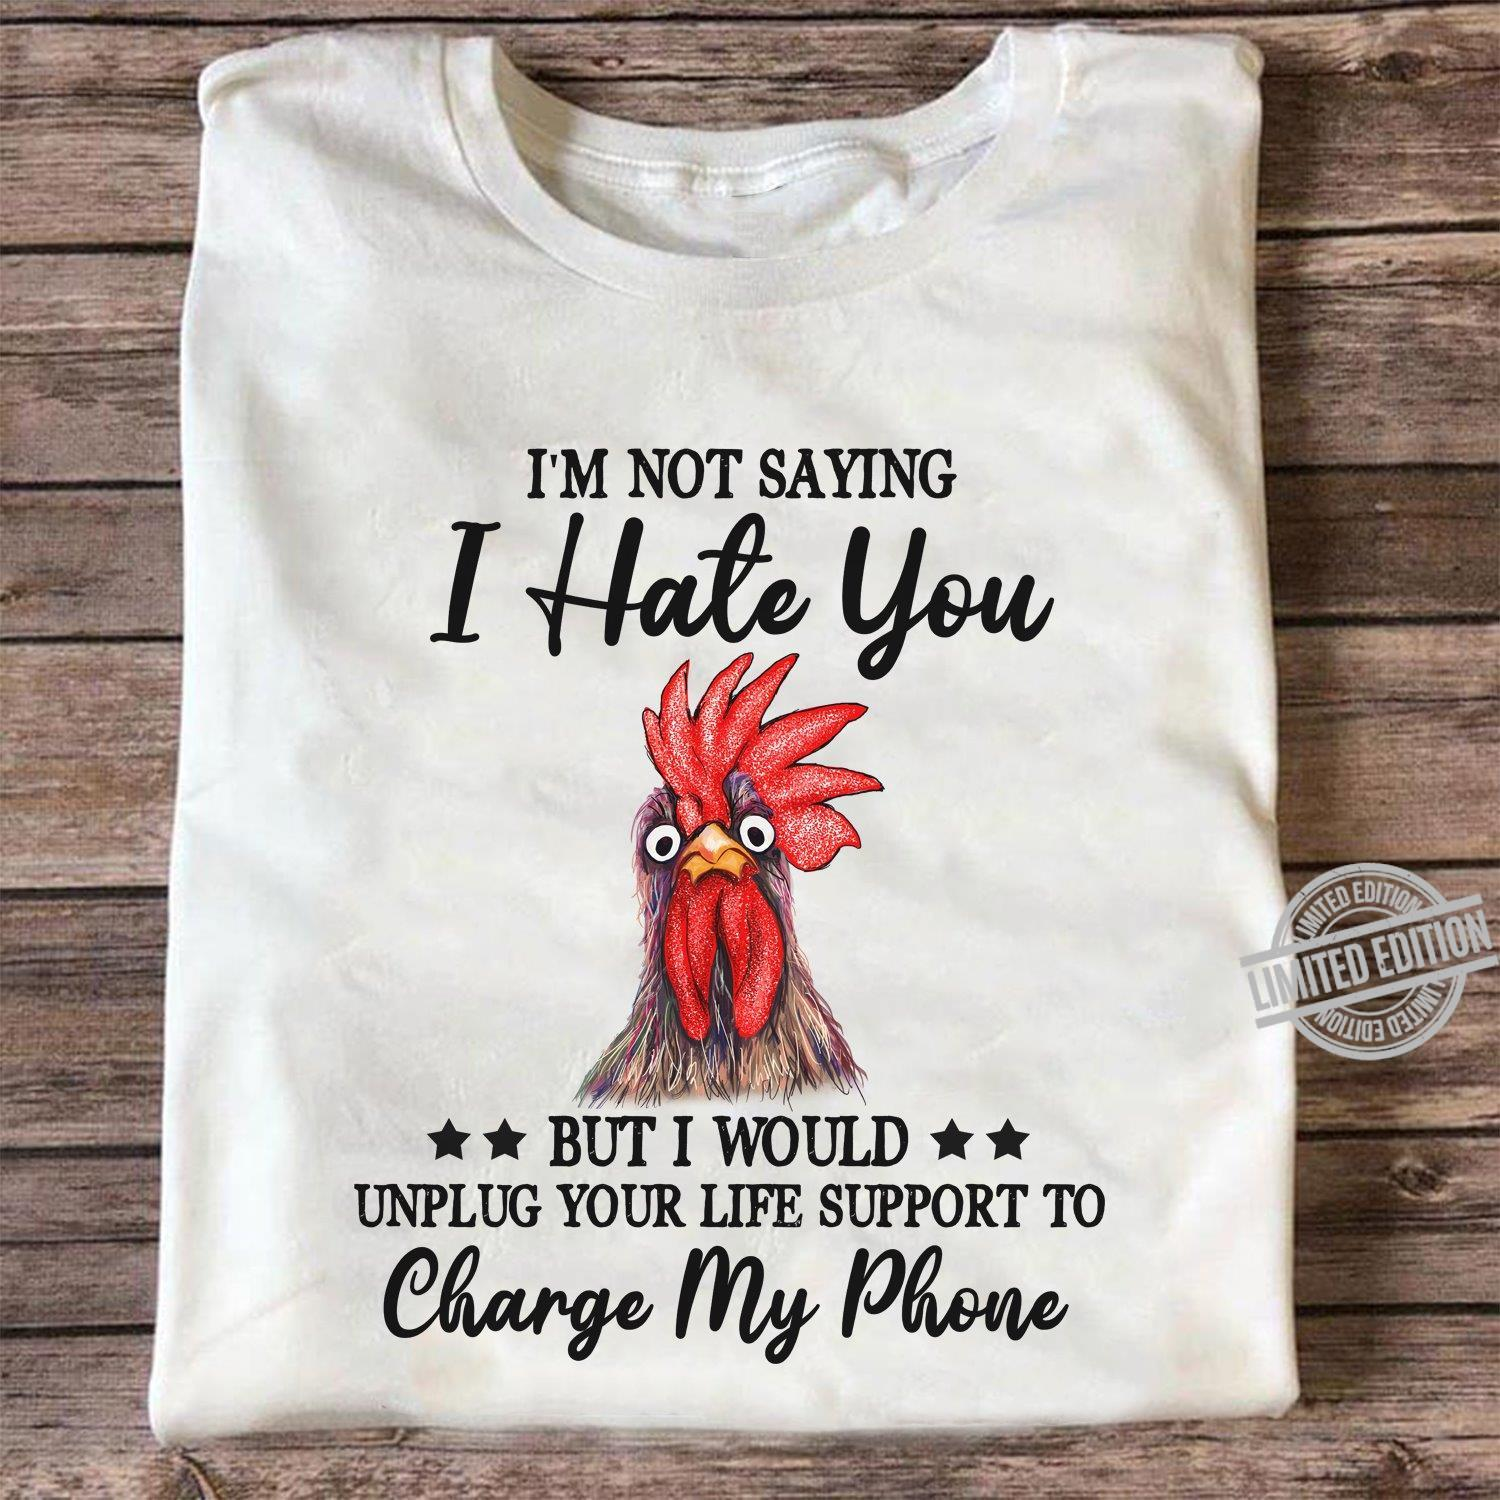 I'm Not Saying I Hate You But I Would Unplug Your Life Support To Charge My Phone Shirt